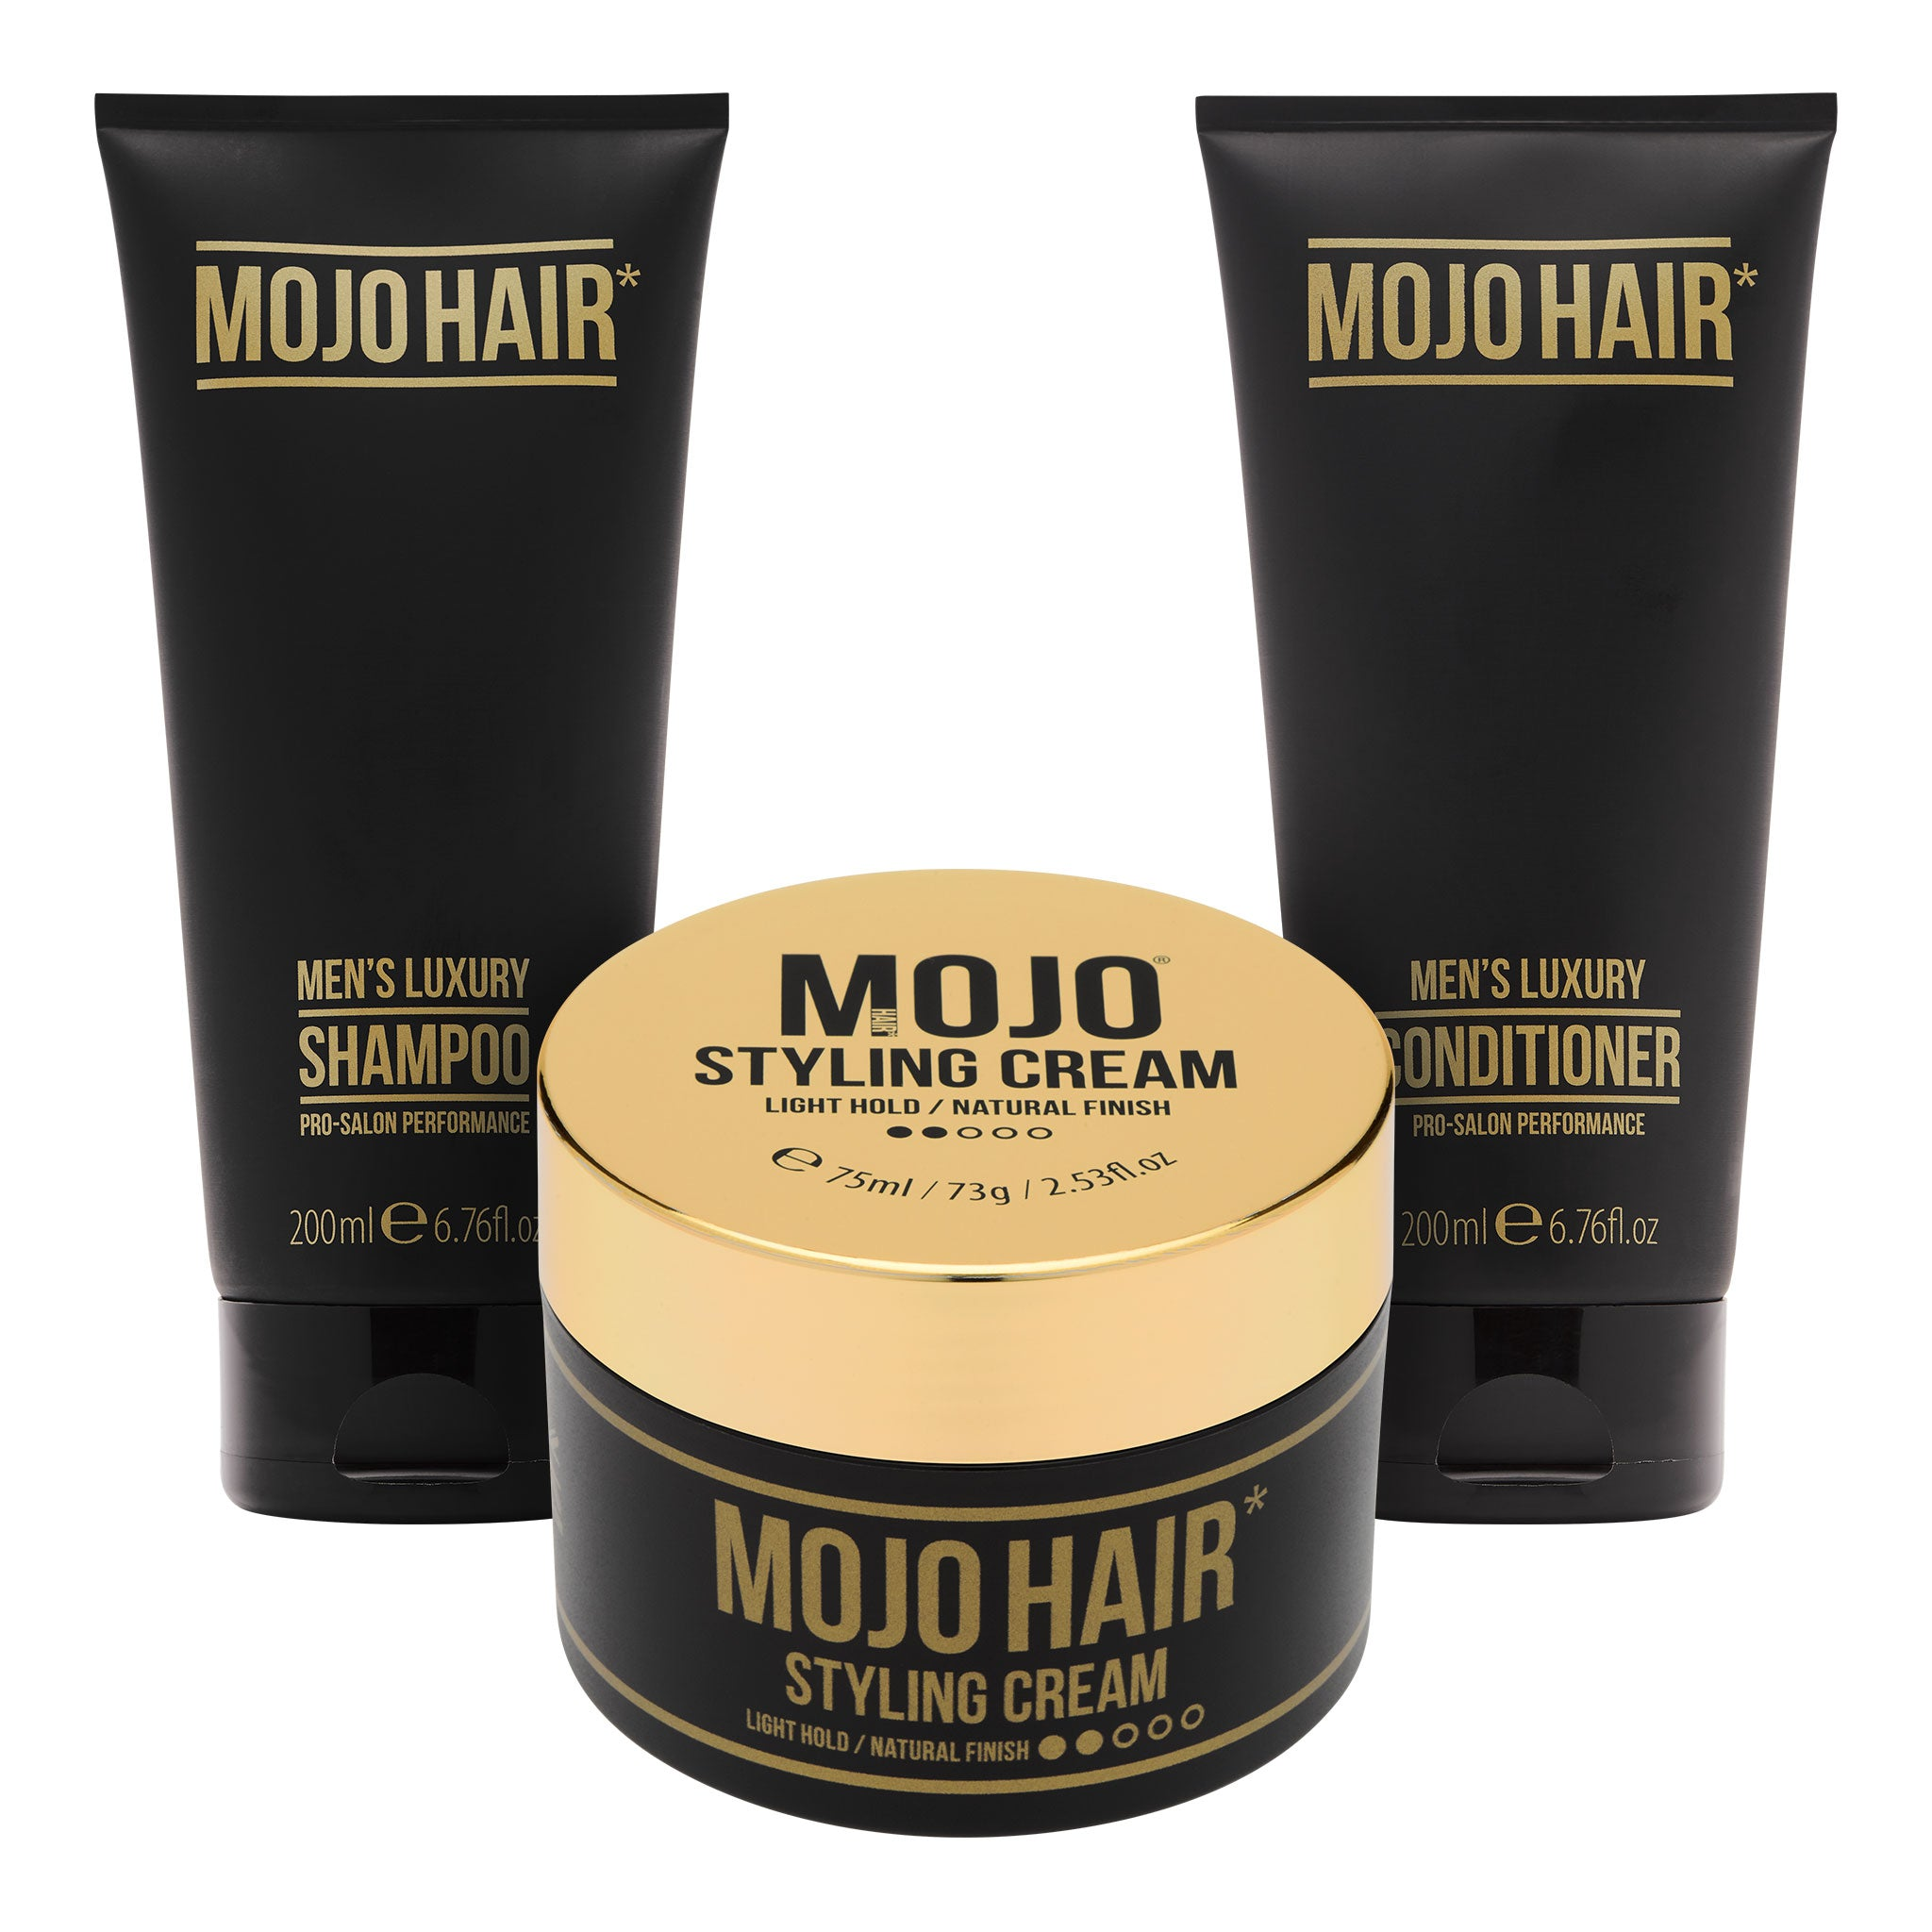 Mojo Hair Styling Cream Set with Shampoo & Conditioner